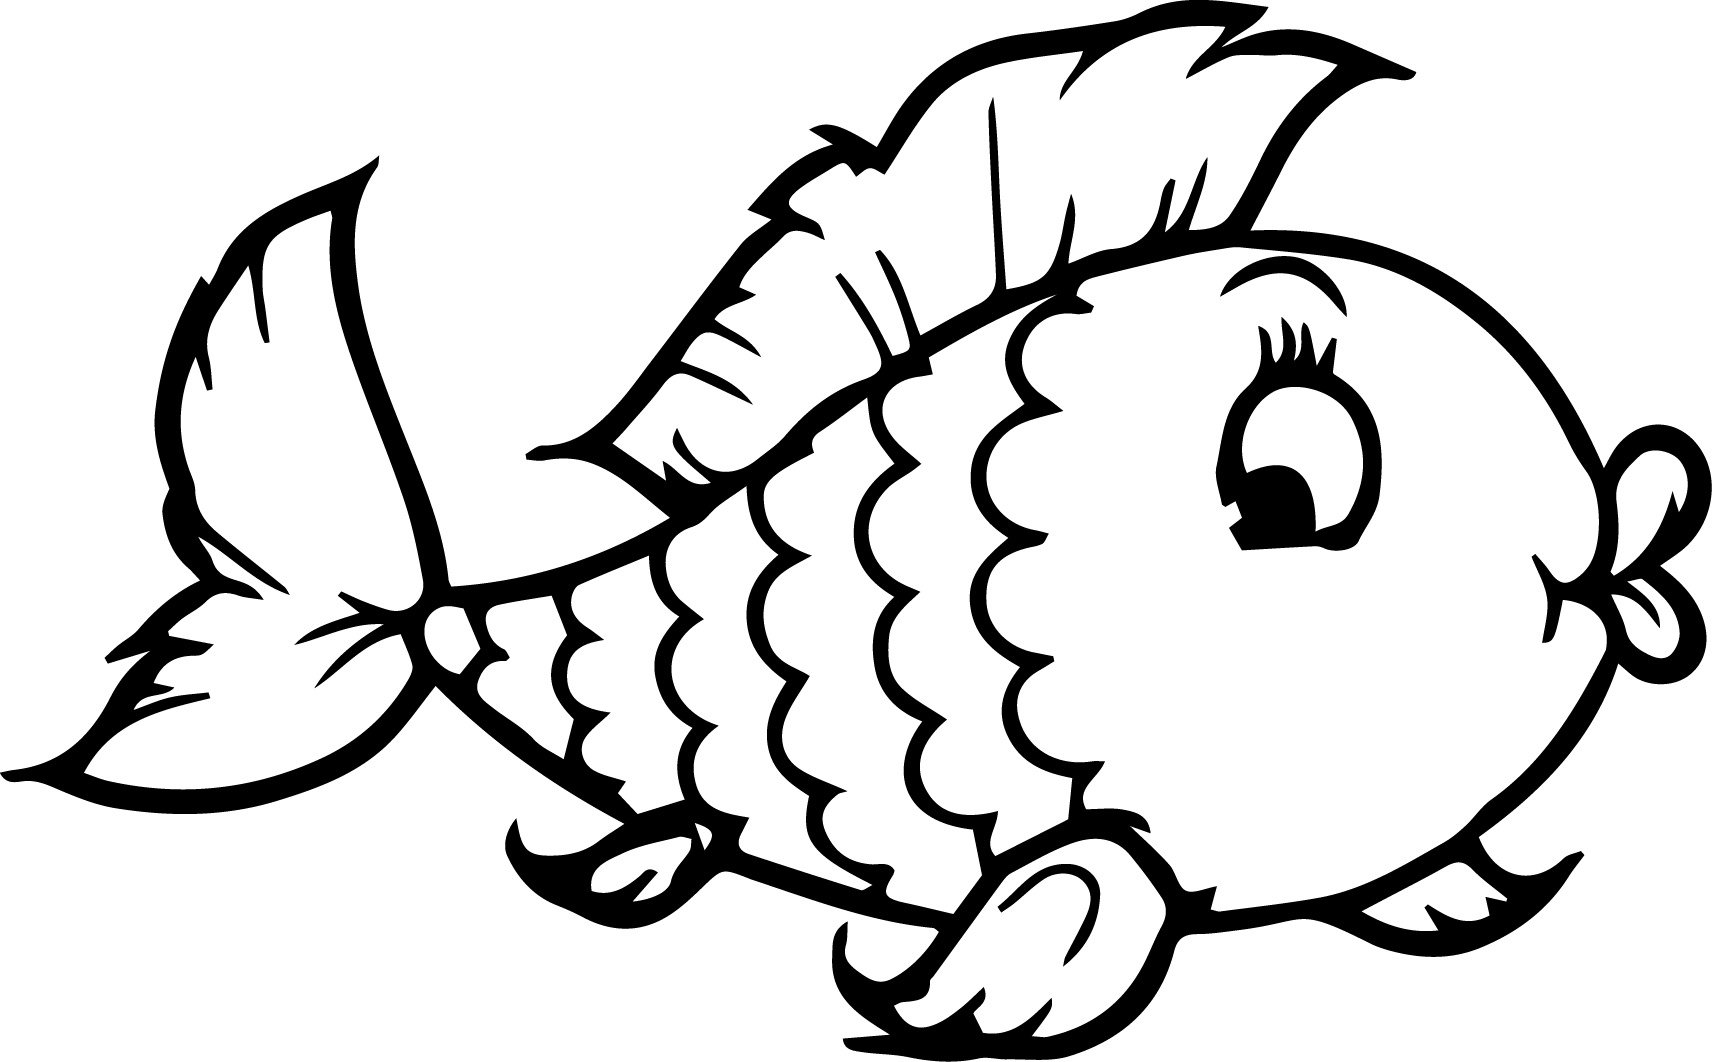 1712x1062 Unique Fish Colouring Template Adult Free Colo